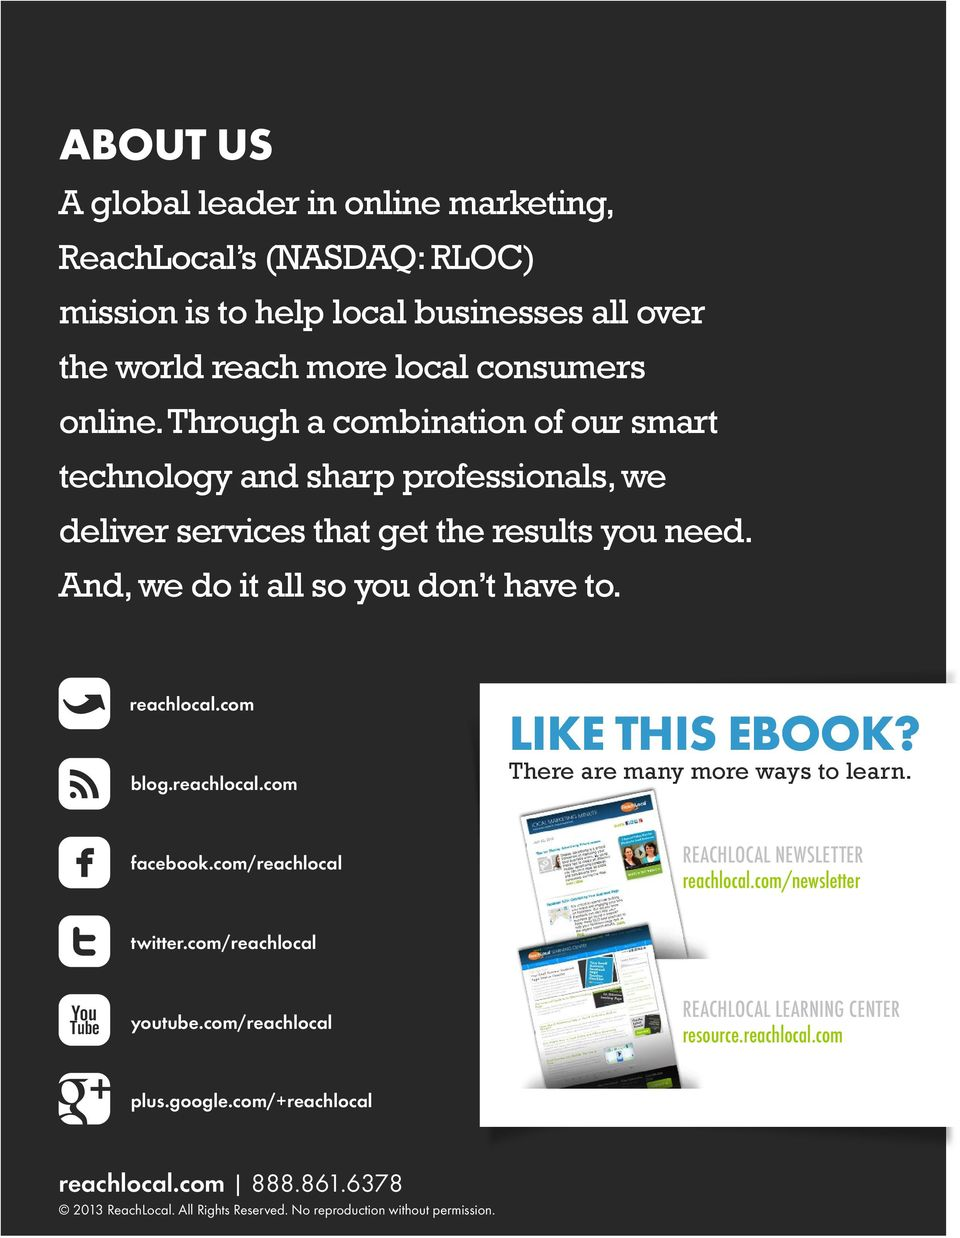 Insert Copy Here Insert reachlocal.com Copy Here blog.reachlocal.com Like This ebook? There are many more ways to learn. facebook.com/reachlocal ReachLocal Newsletter reachlocal.